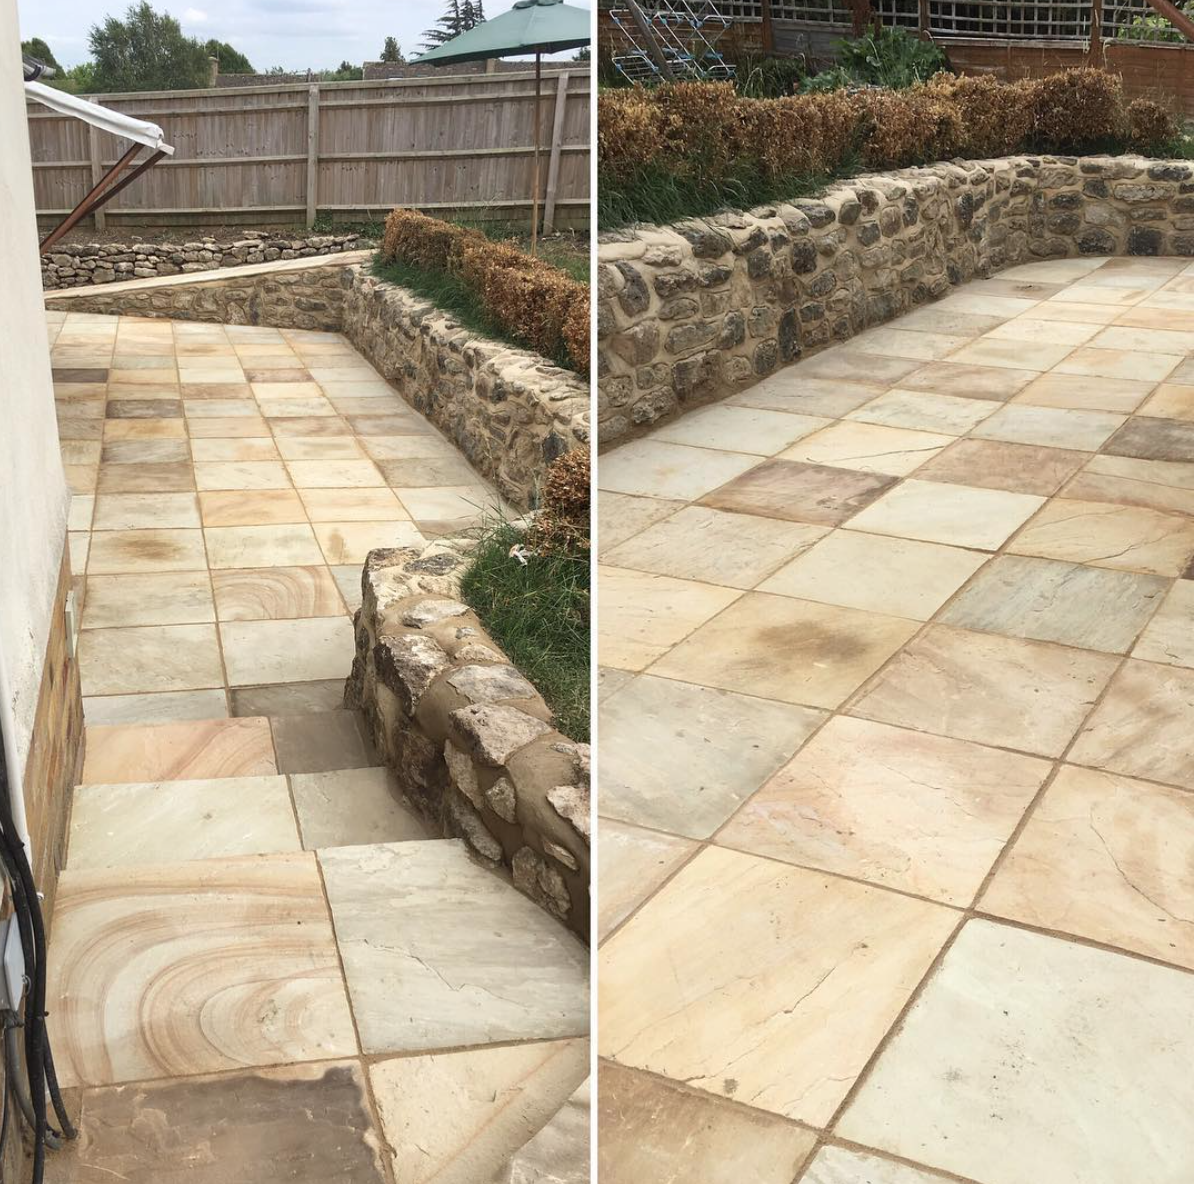 Natural Stone Paving With A Cotswolds Stone Wall Surround Driveways Patios Concrete Imprintedconcrete Paving Blo Stone Wall Natural Stones Paving Stones